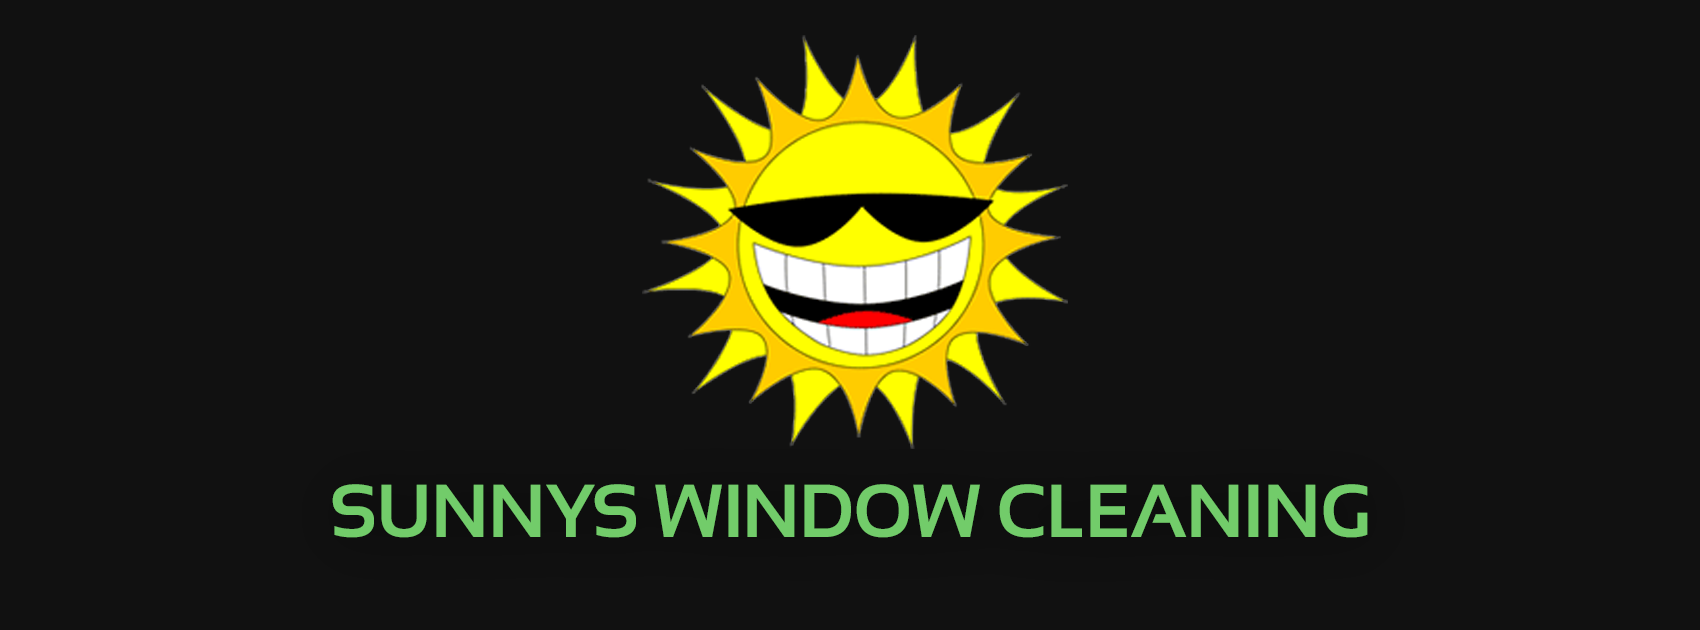 Sunnys Window Cleaning Affordable Amp Reliable Services